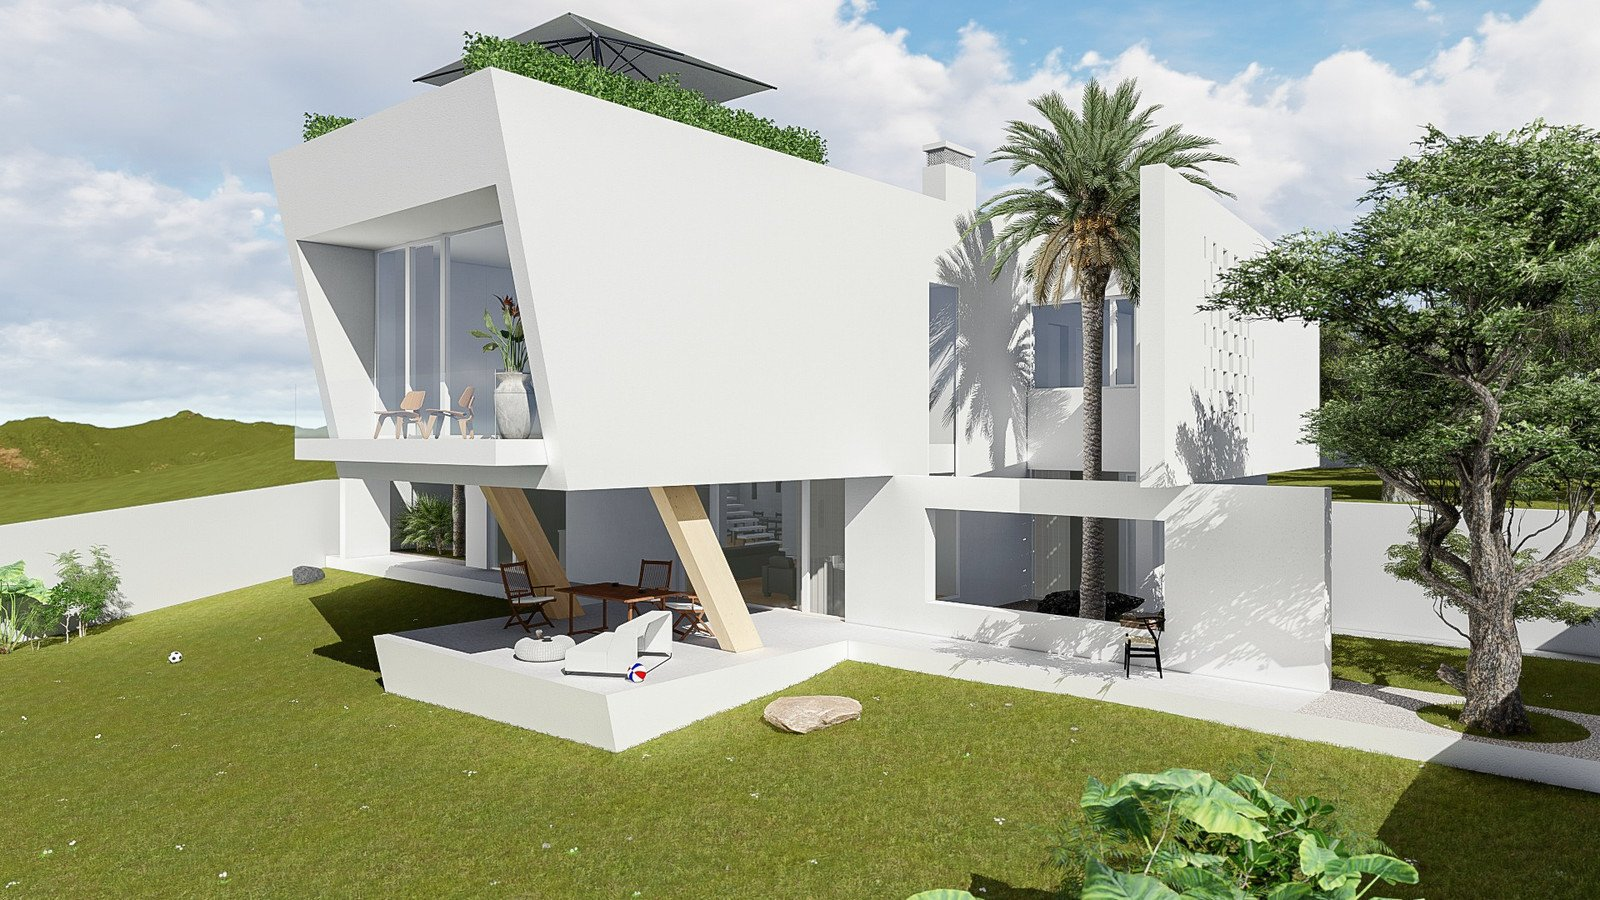 Photo 10 of 11 in 10 Bright White Cubist Homes Across the Globe